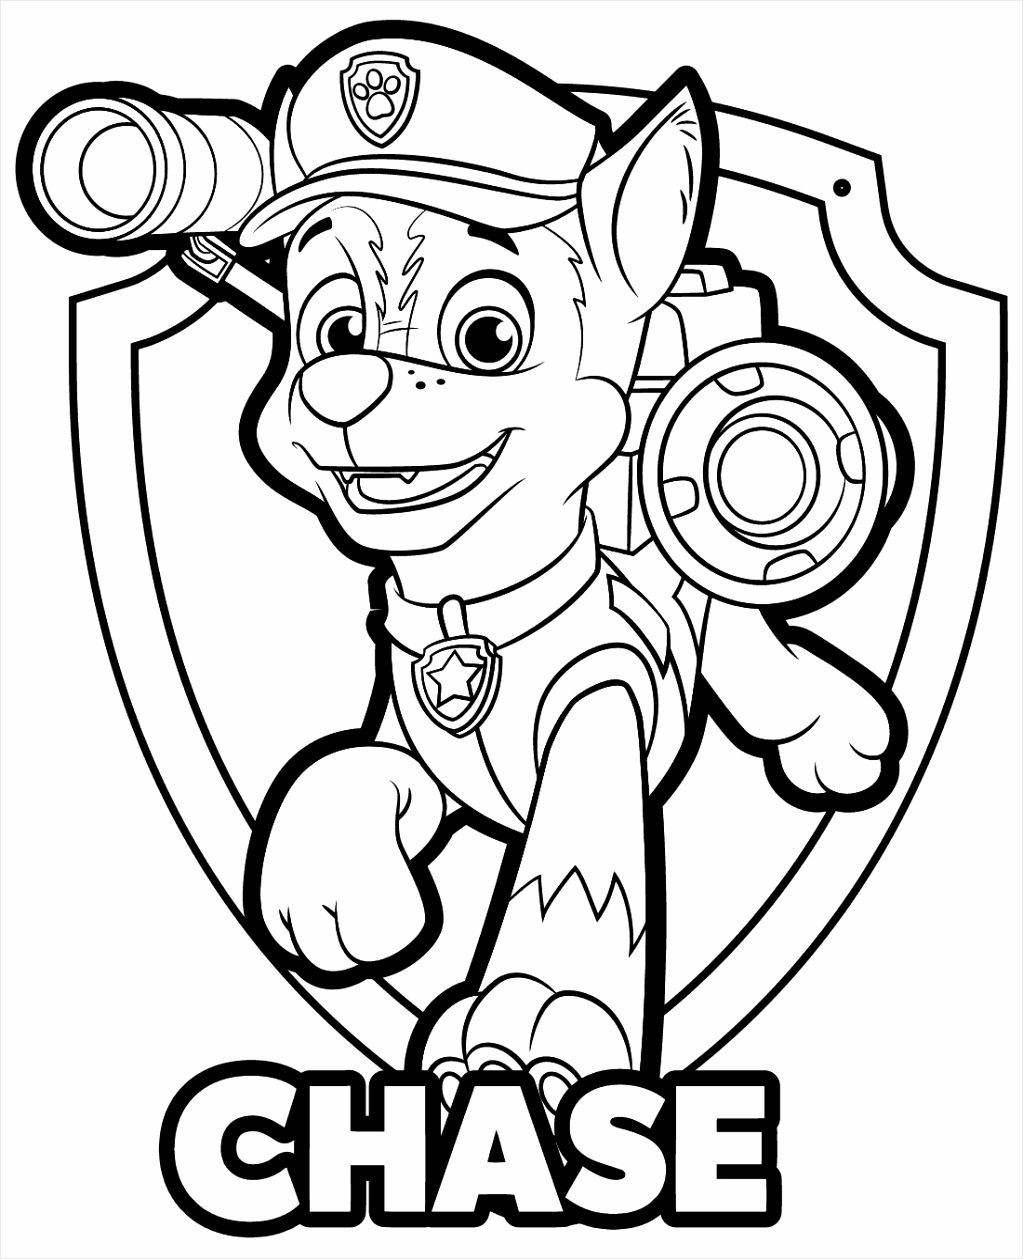 c e069f1f dd2a65cc61ae8d coloring pages paw patrol chase badge page super and skye to print 1100 1340 rumue